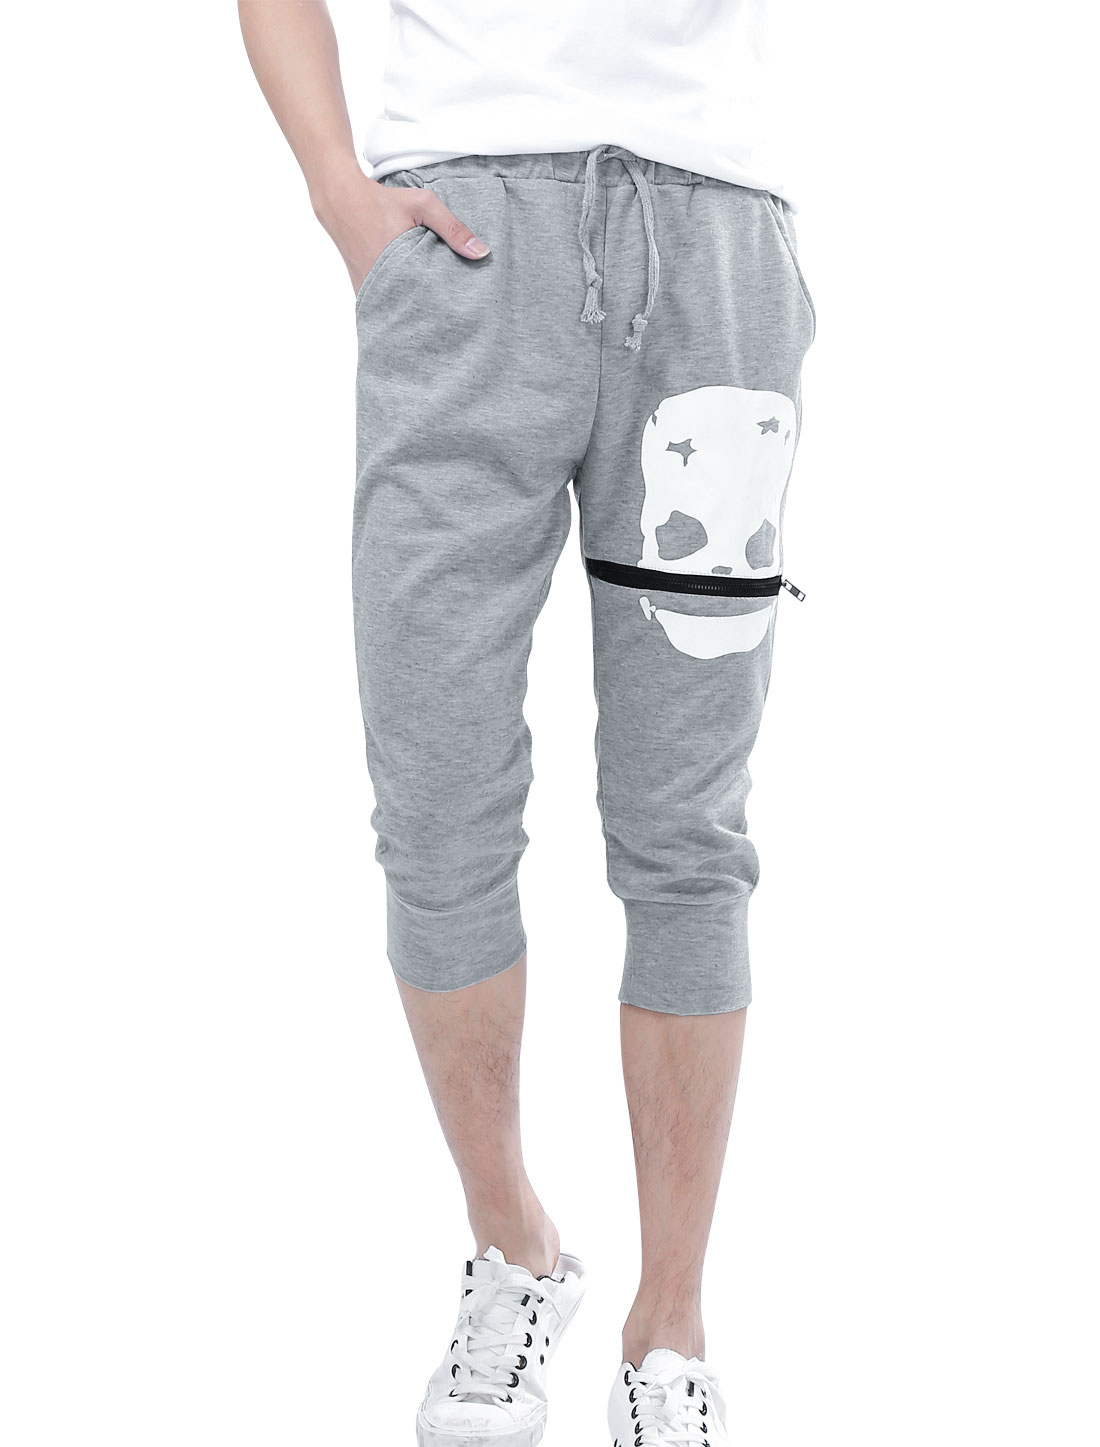 Men Drawstring Waist Skull Printed Stylish Capris Pants Light Gray W32